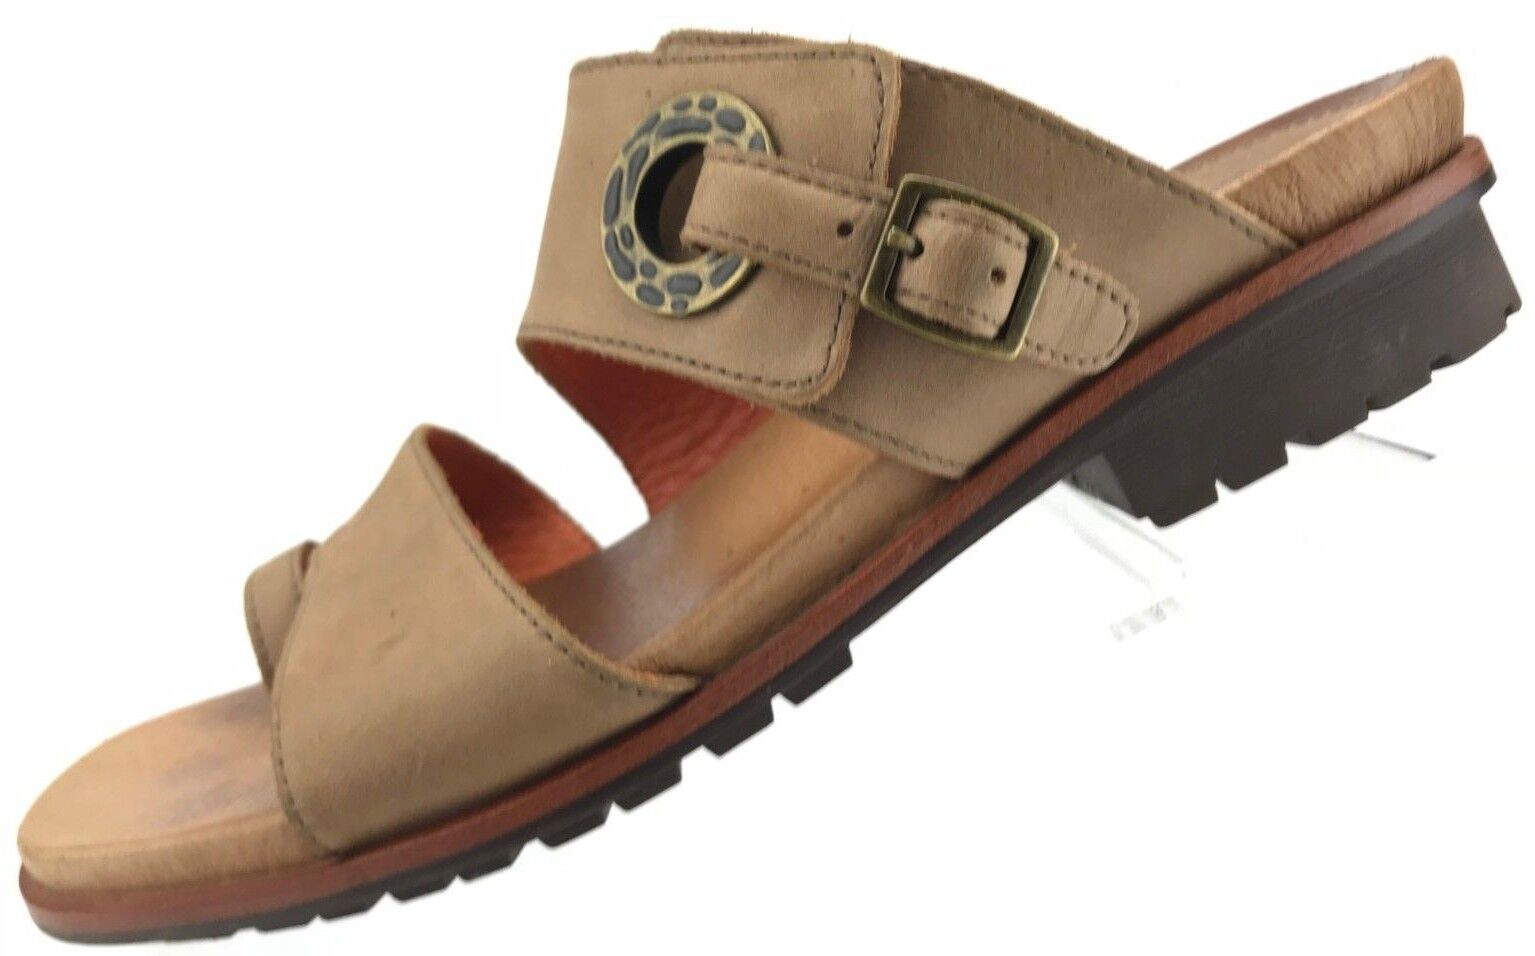 Ariat Sandals - Kailey Buff Slide Footbed Toe Ring Leather shoes Womens 7B Beige